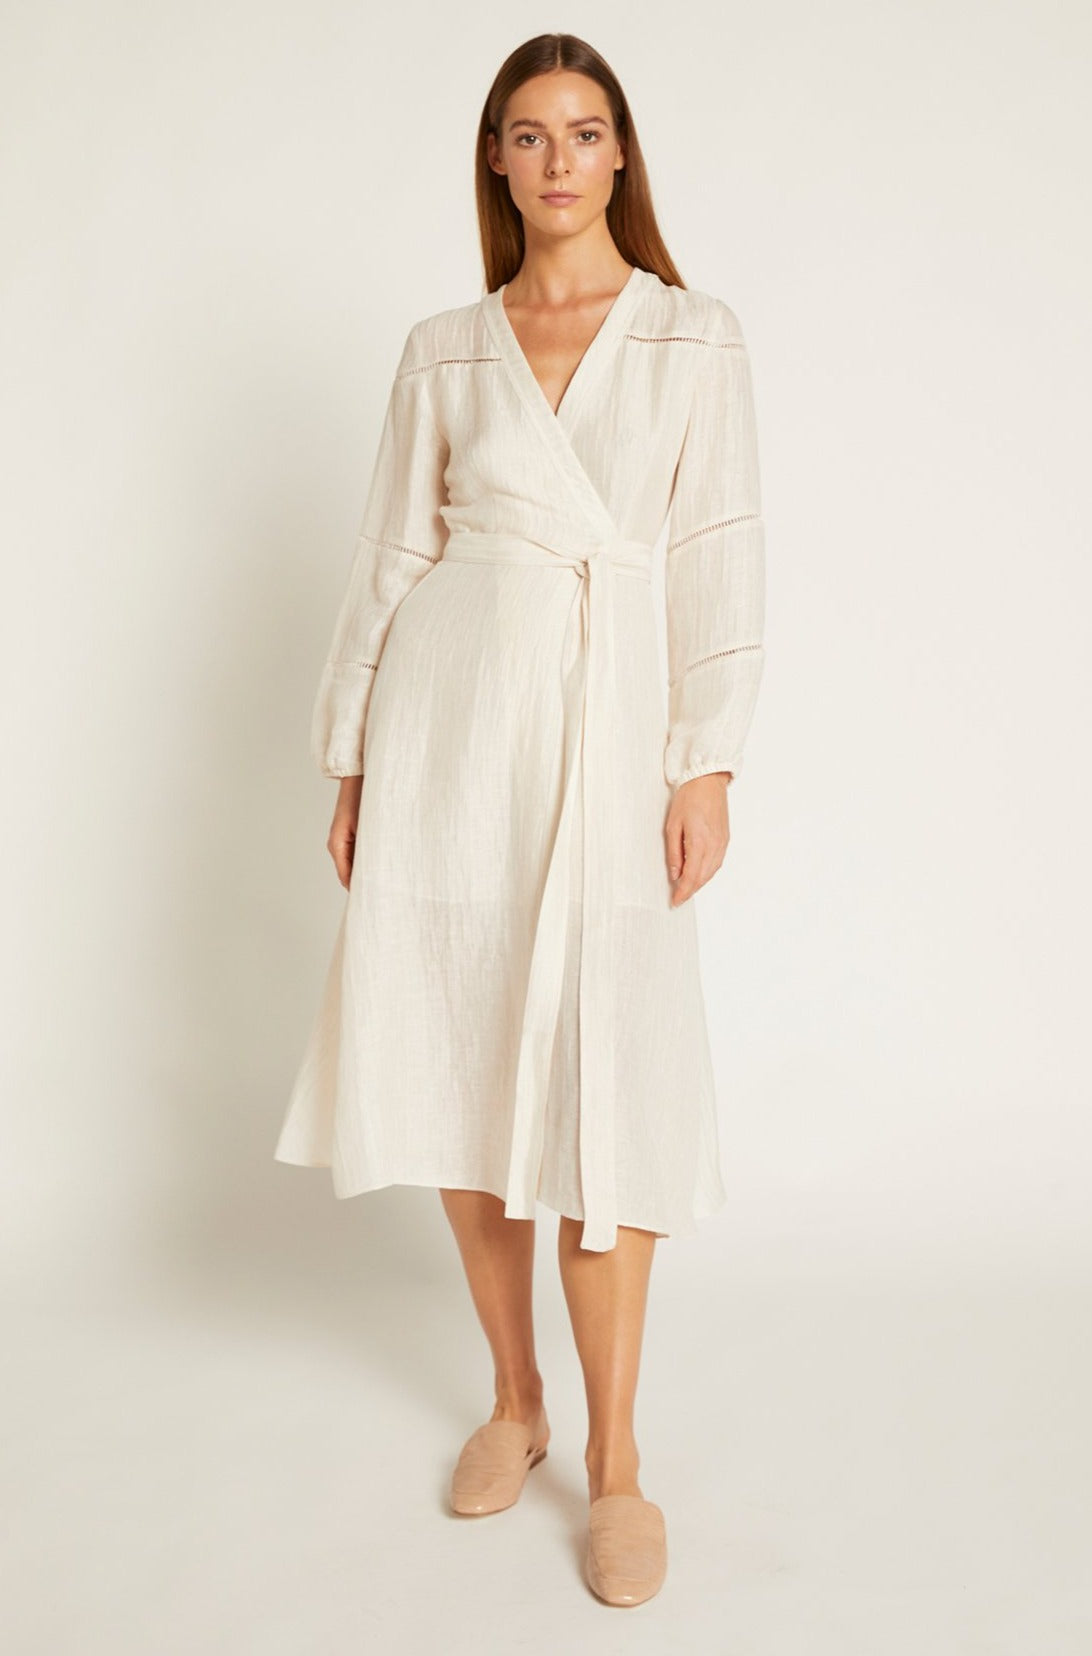 Ivory Luca frill wrap dress